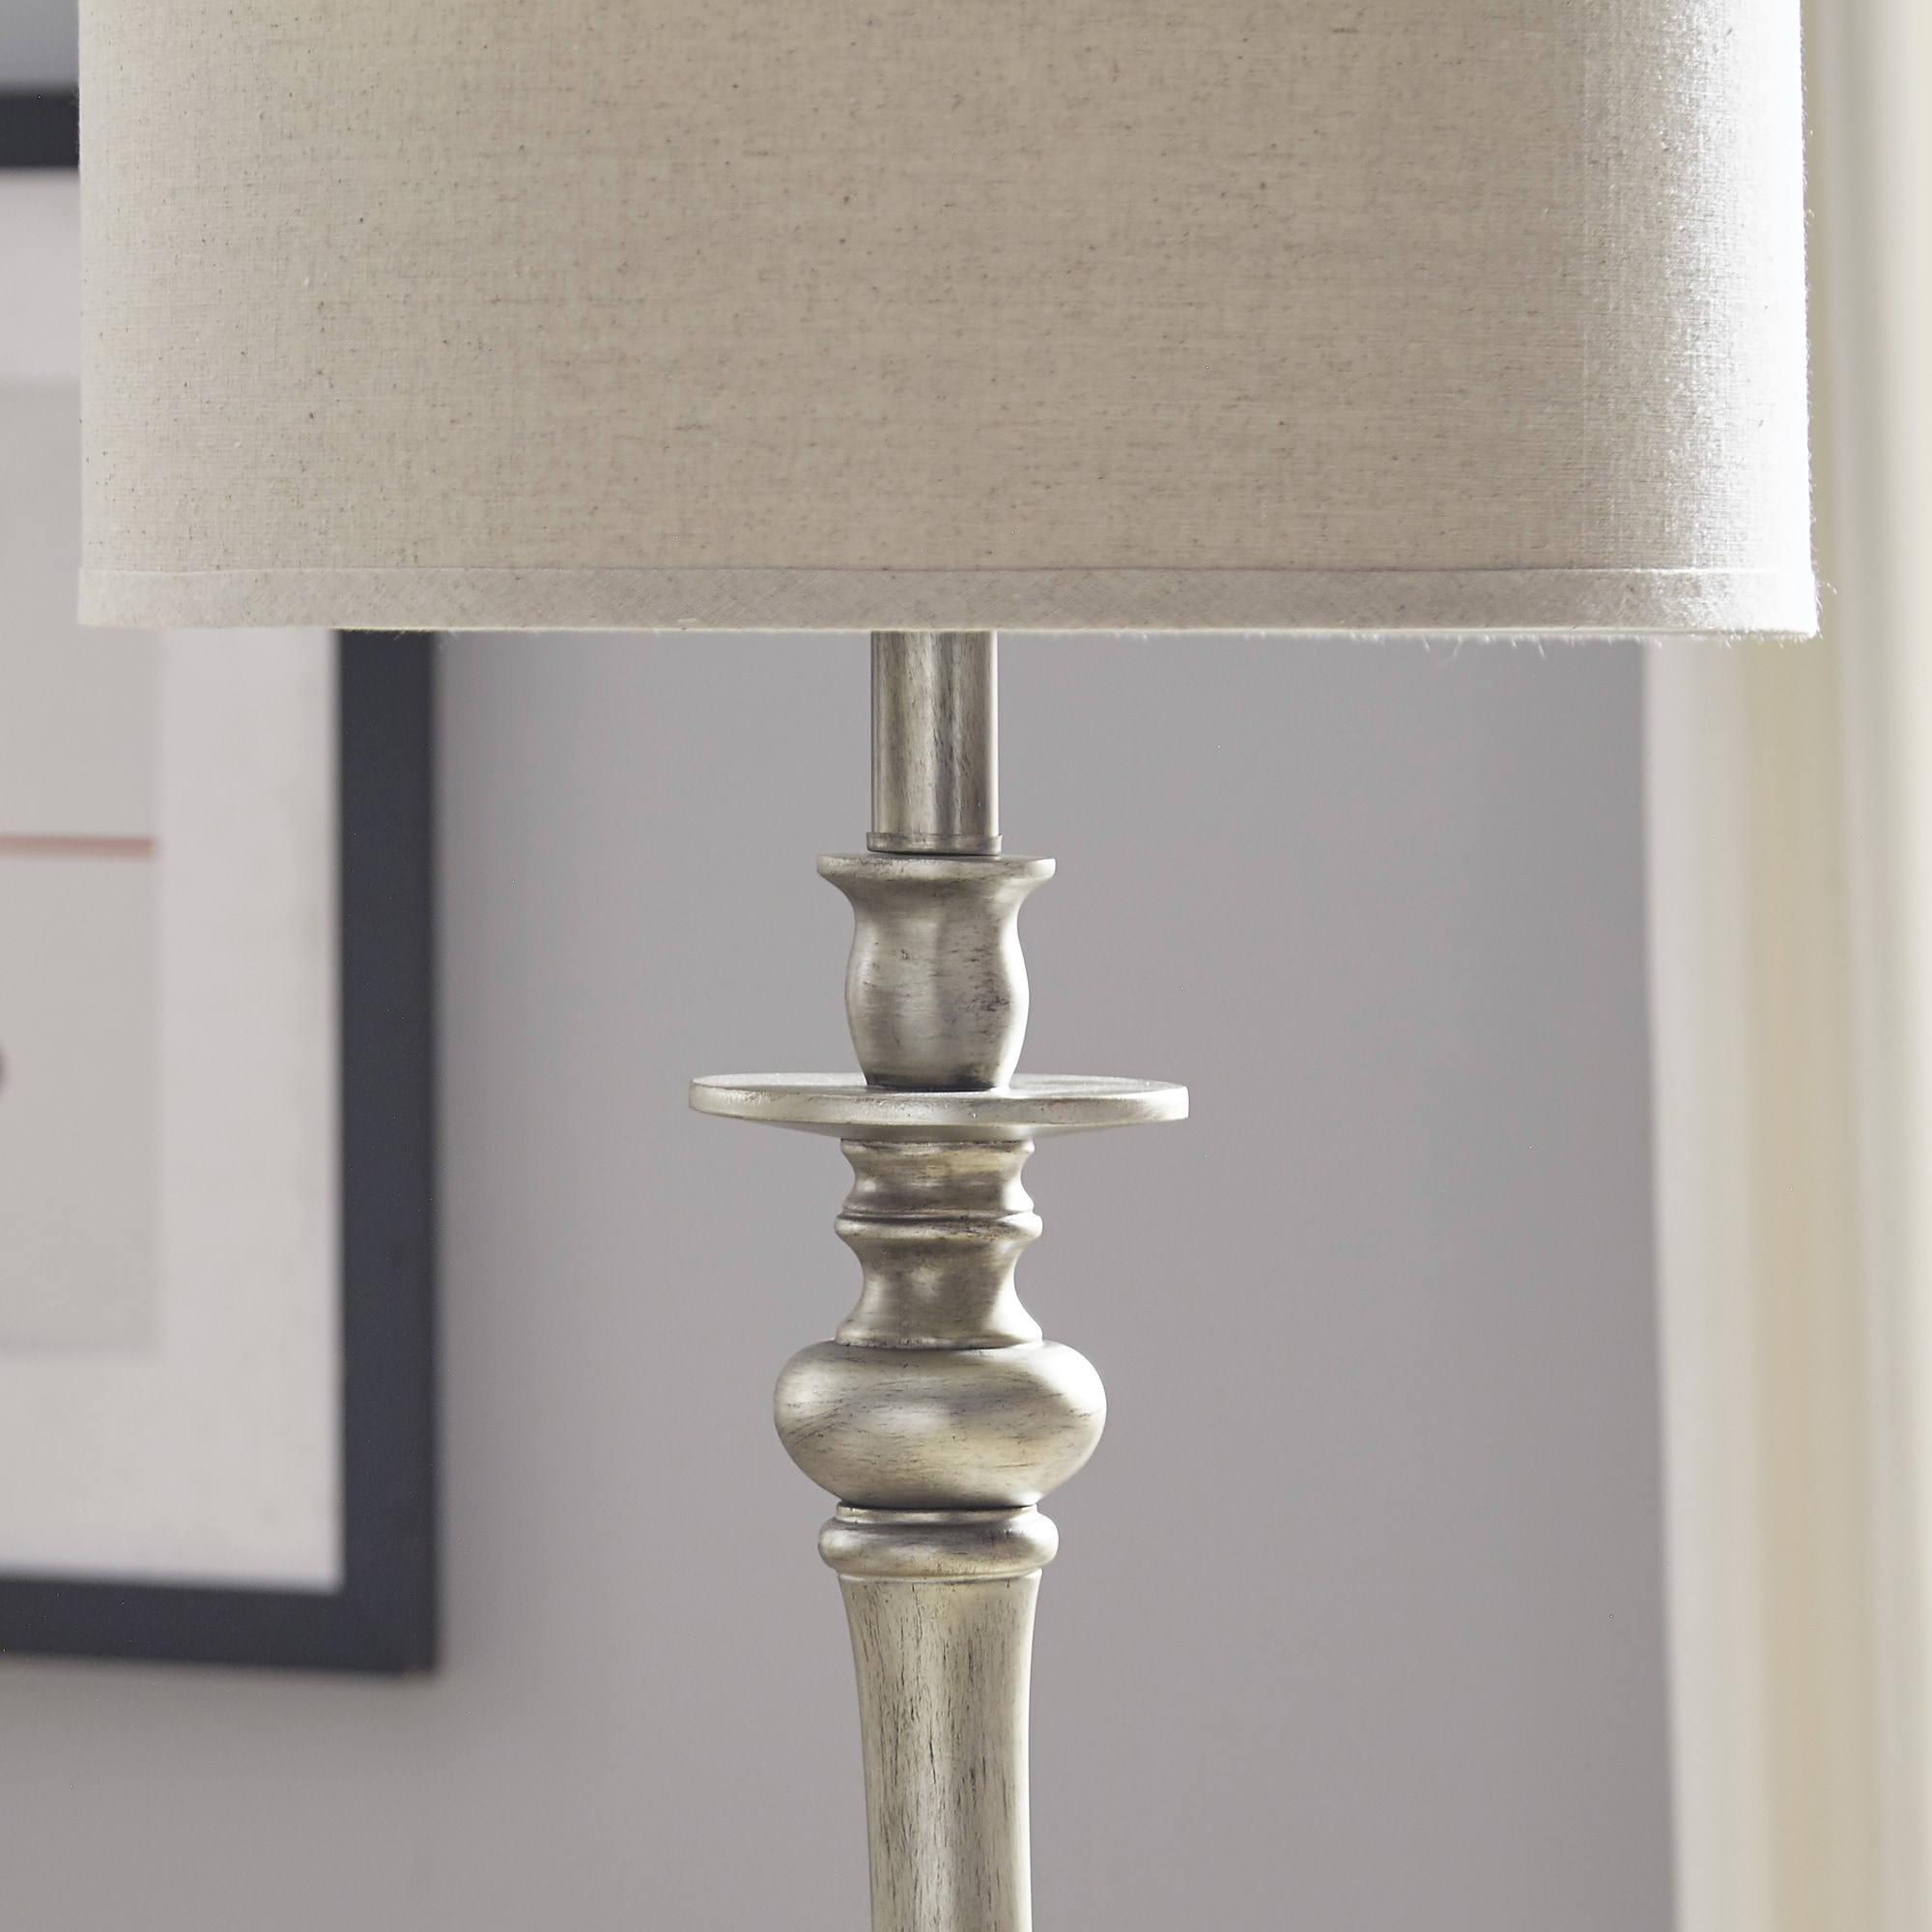 Isabelle Antique Silver Floor Lamp from INSPIRE Q by iNSPIRE Q Classic -  Free Shipping Today - Overstock.com - 21831158